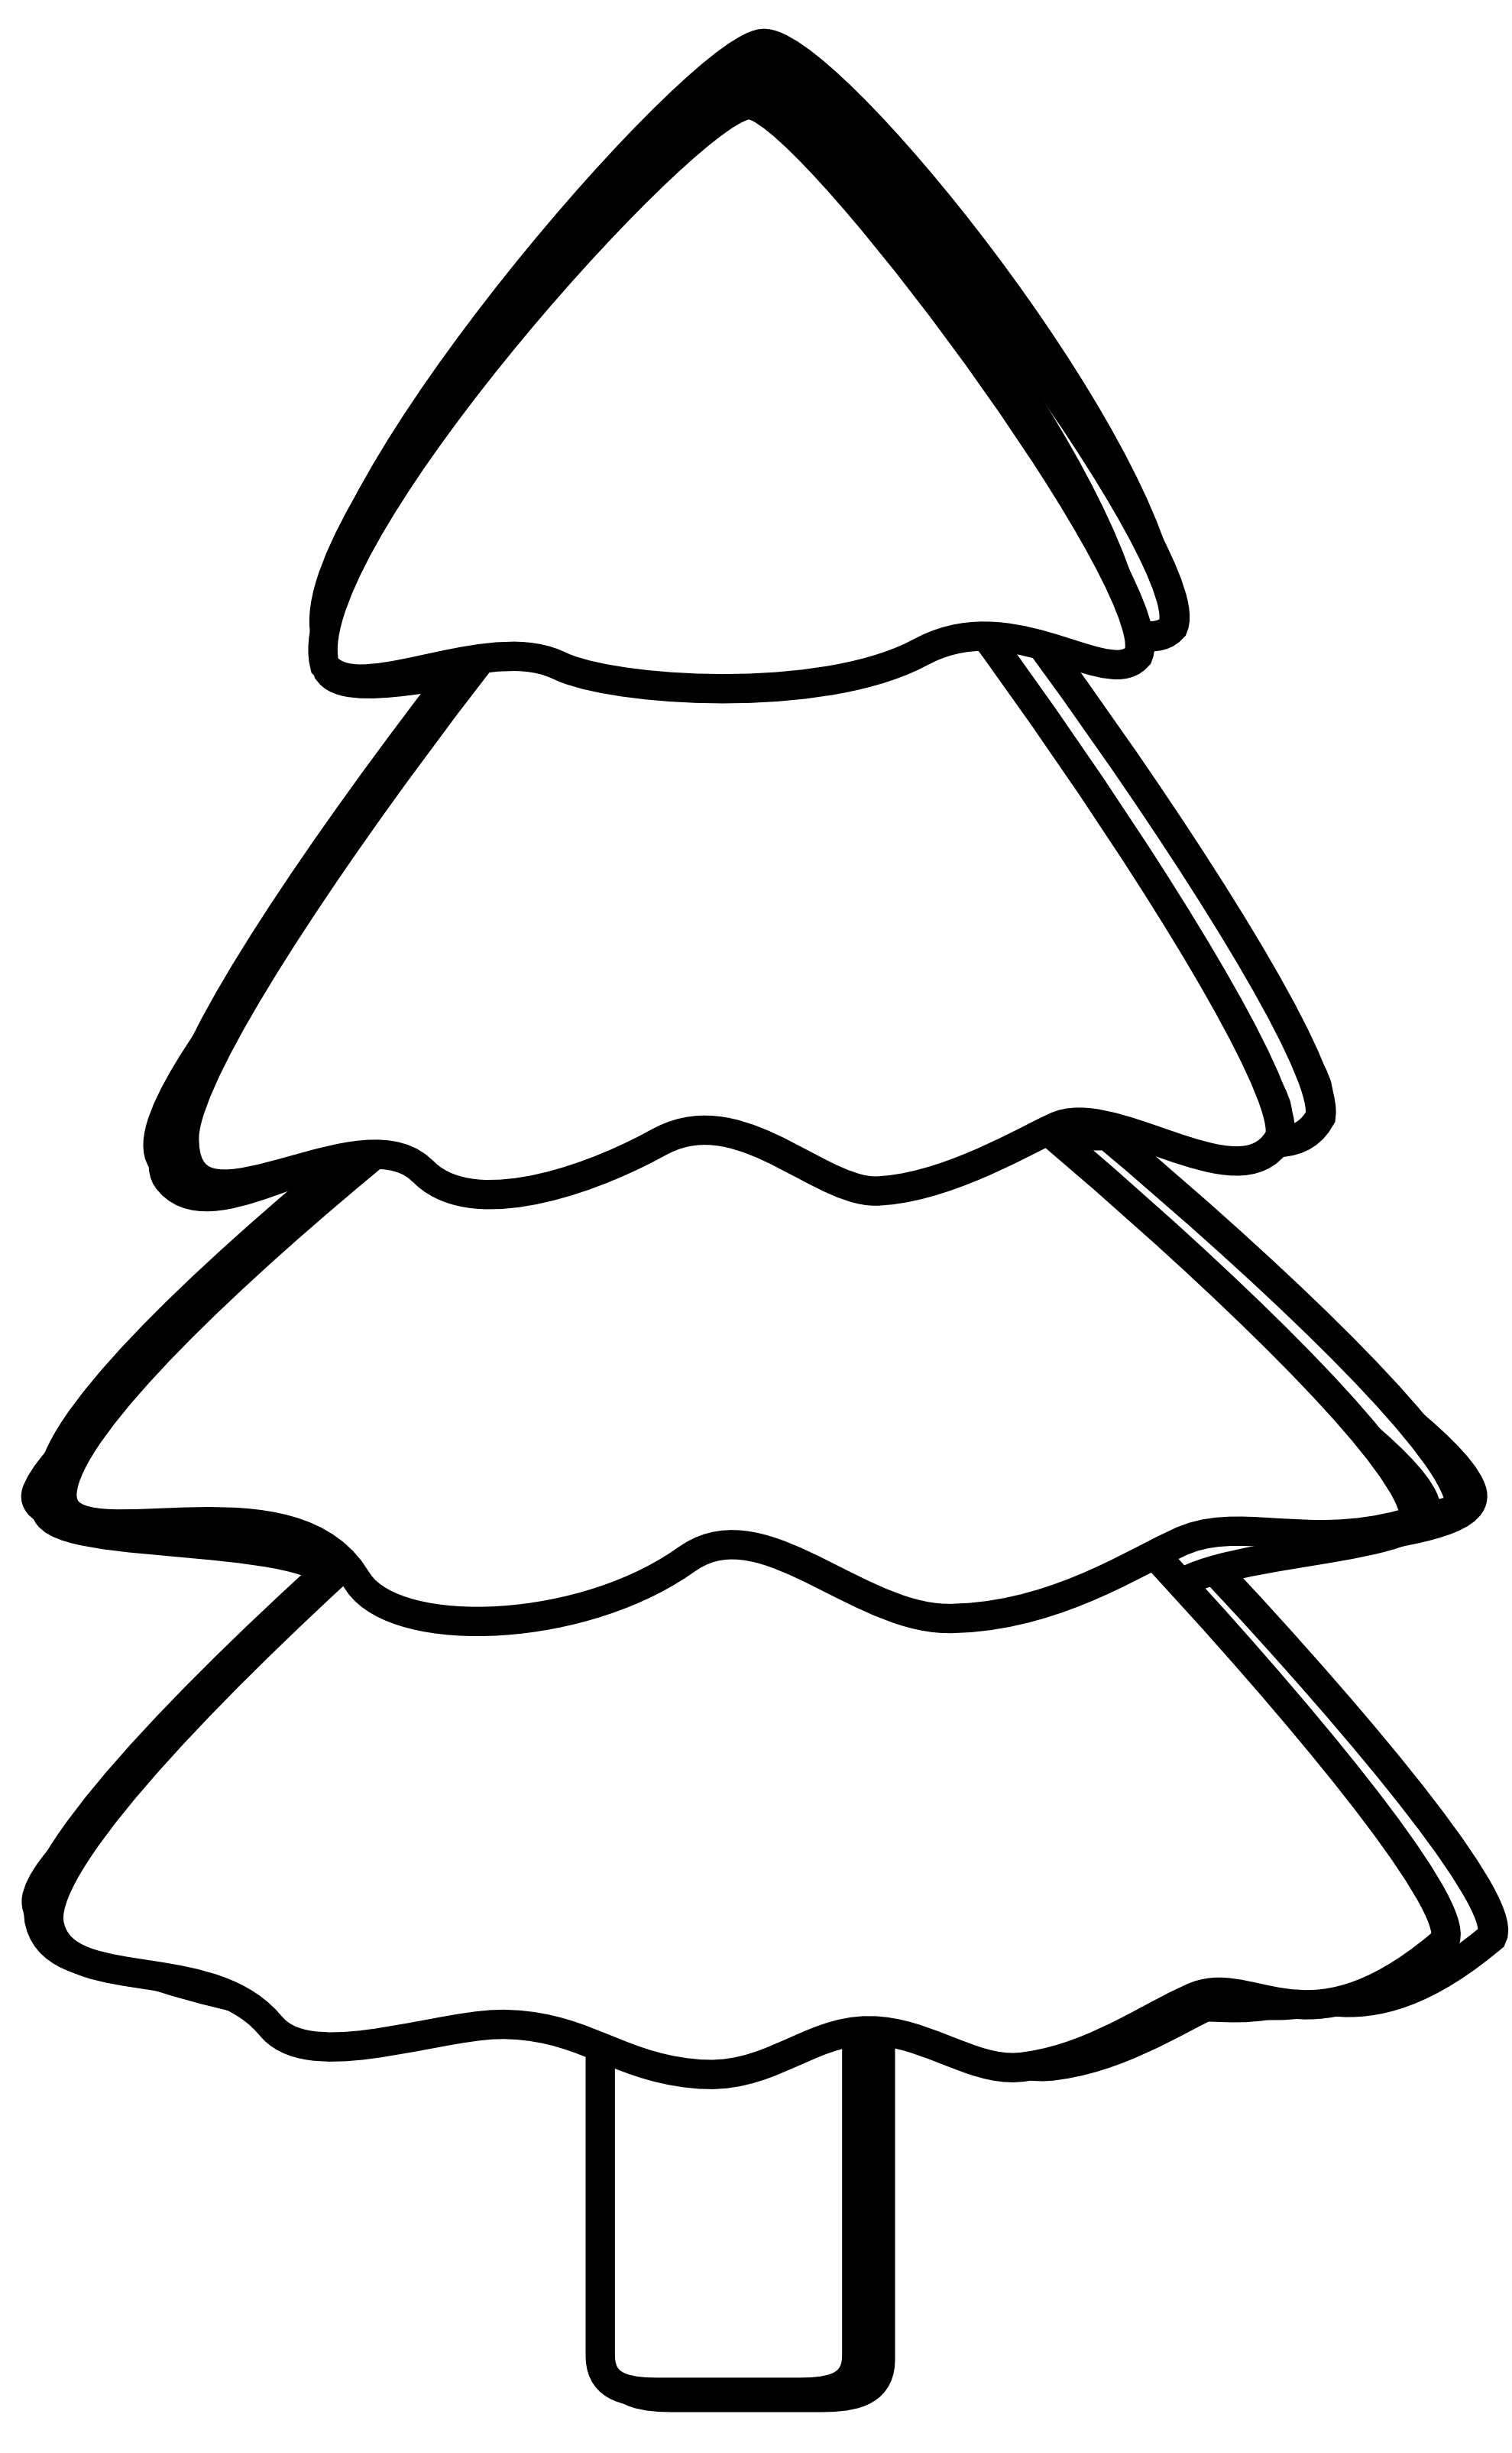 book tree clipart - photo #46